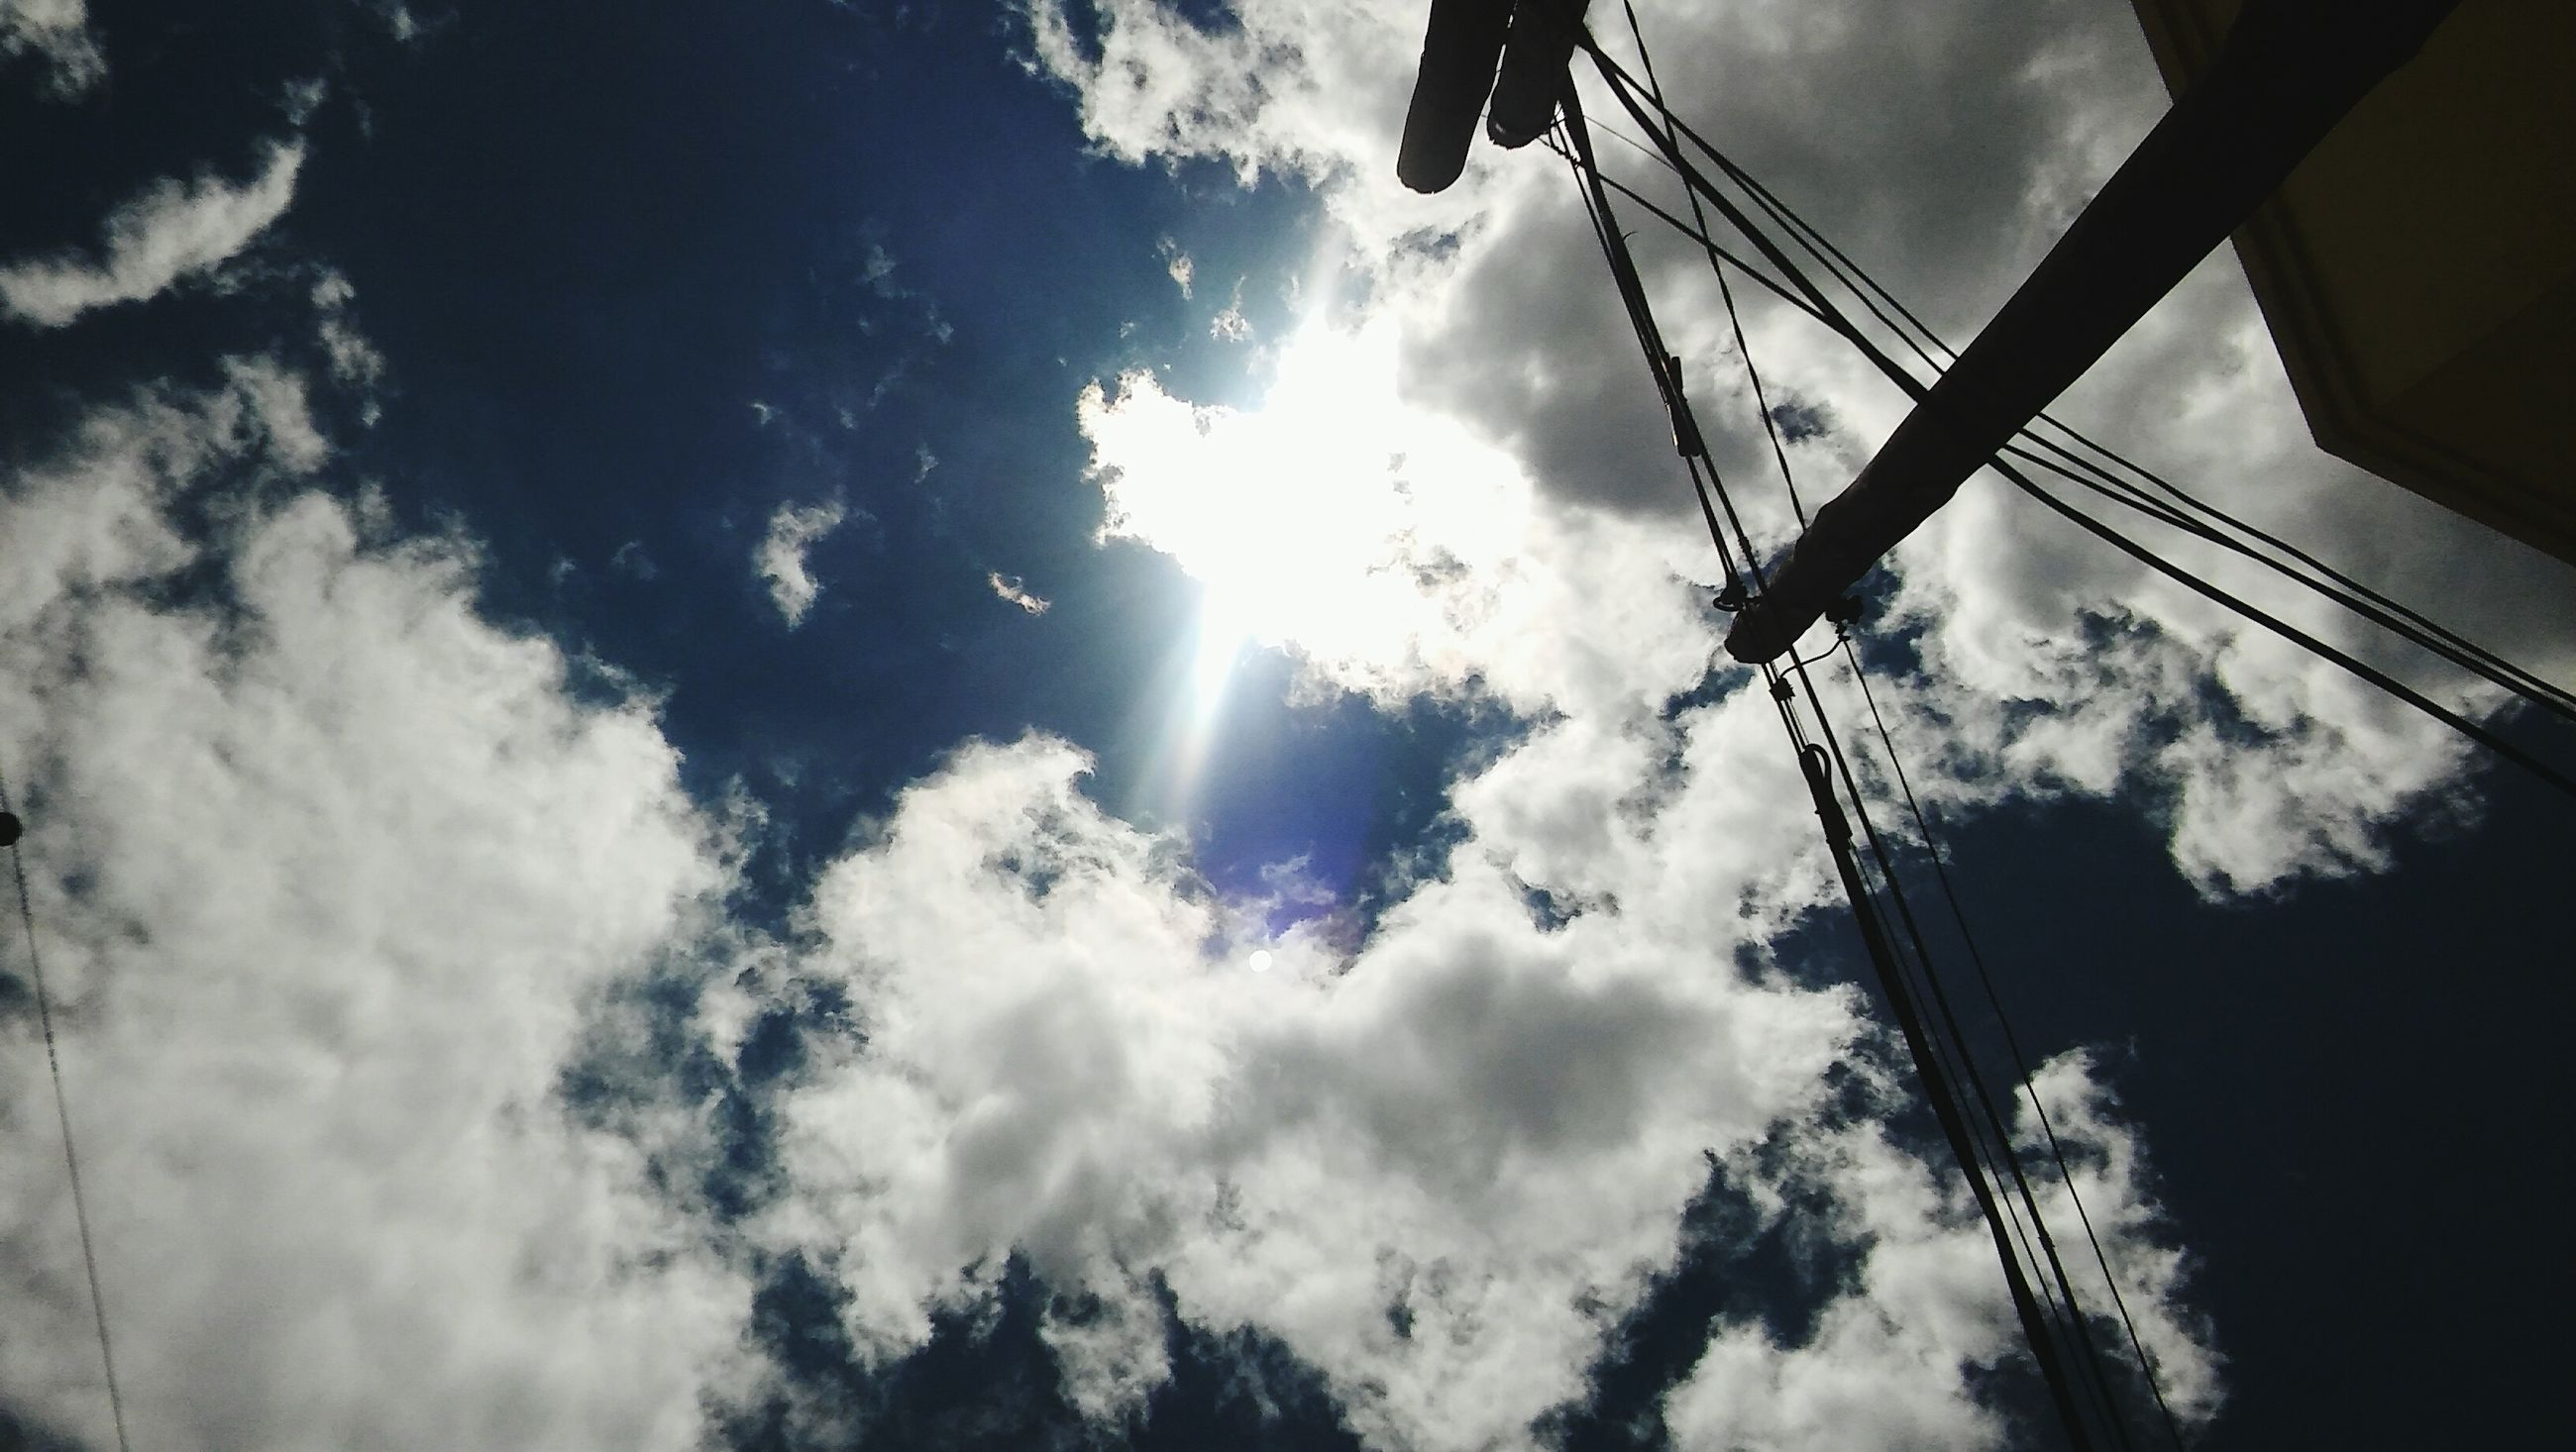 low angle view, sky, cloud - sky, sun, sunbeam, cloudy, cloud, sunlight, lens flare, nature, outdoors, day, silhouette, no people, electricity, power line, cable, built structure, sunny, street light